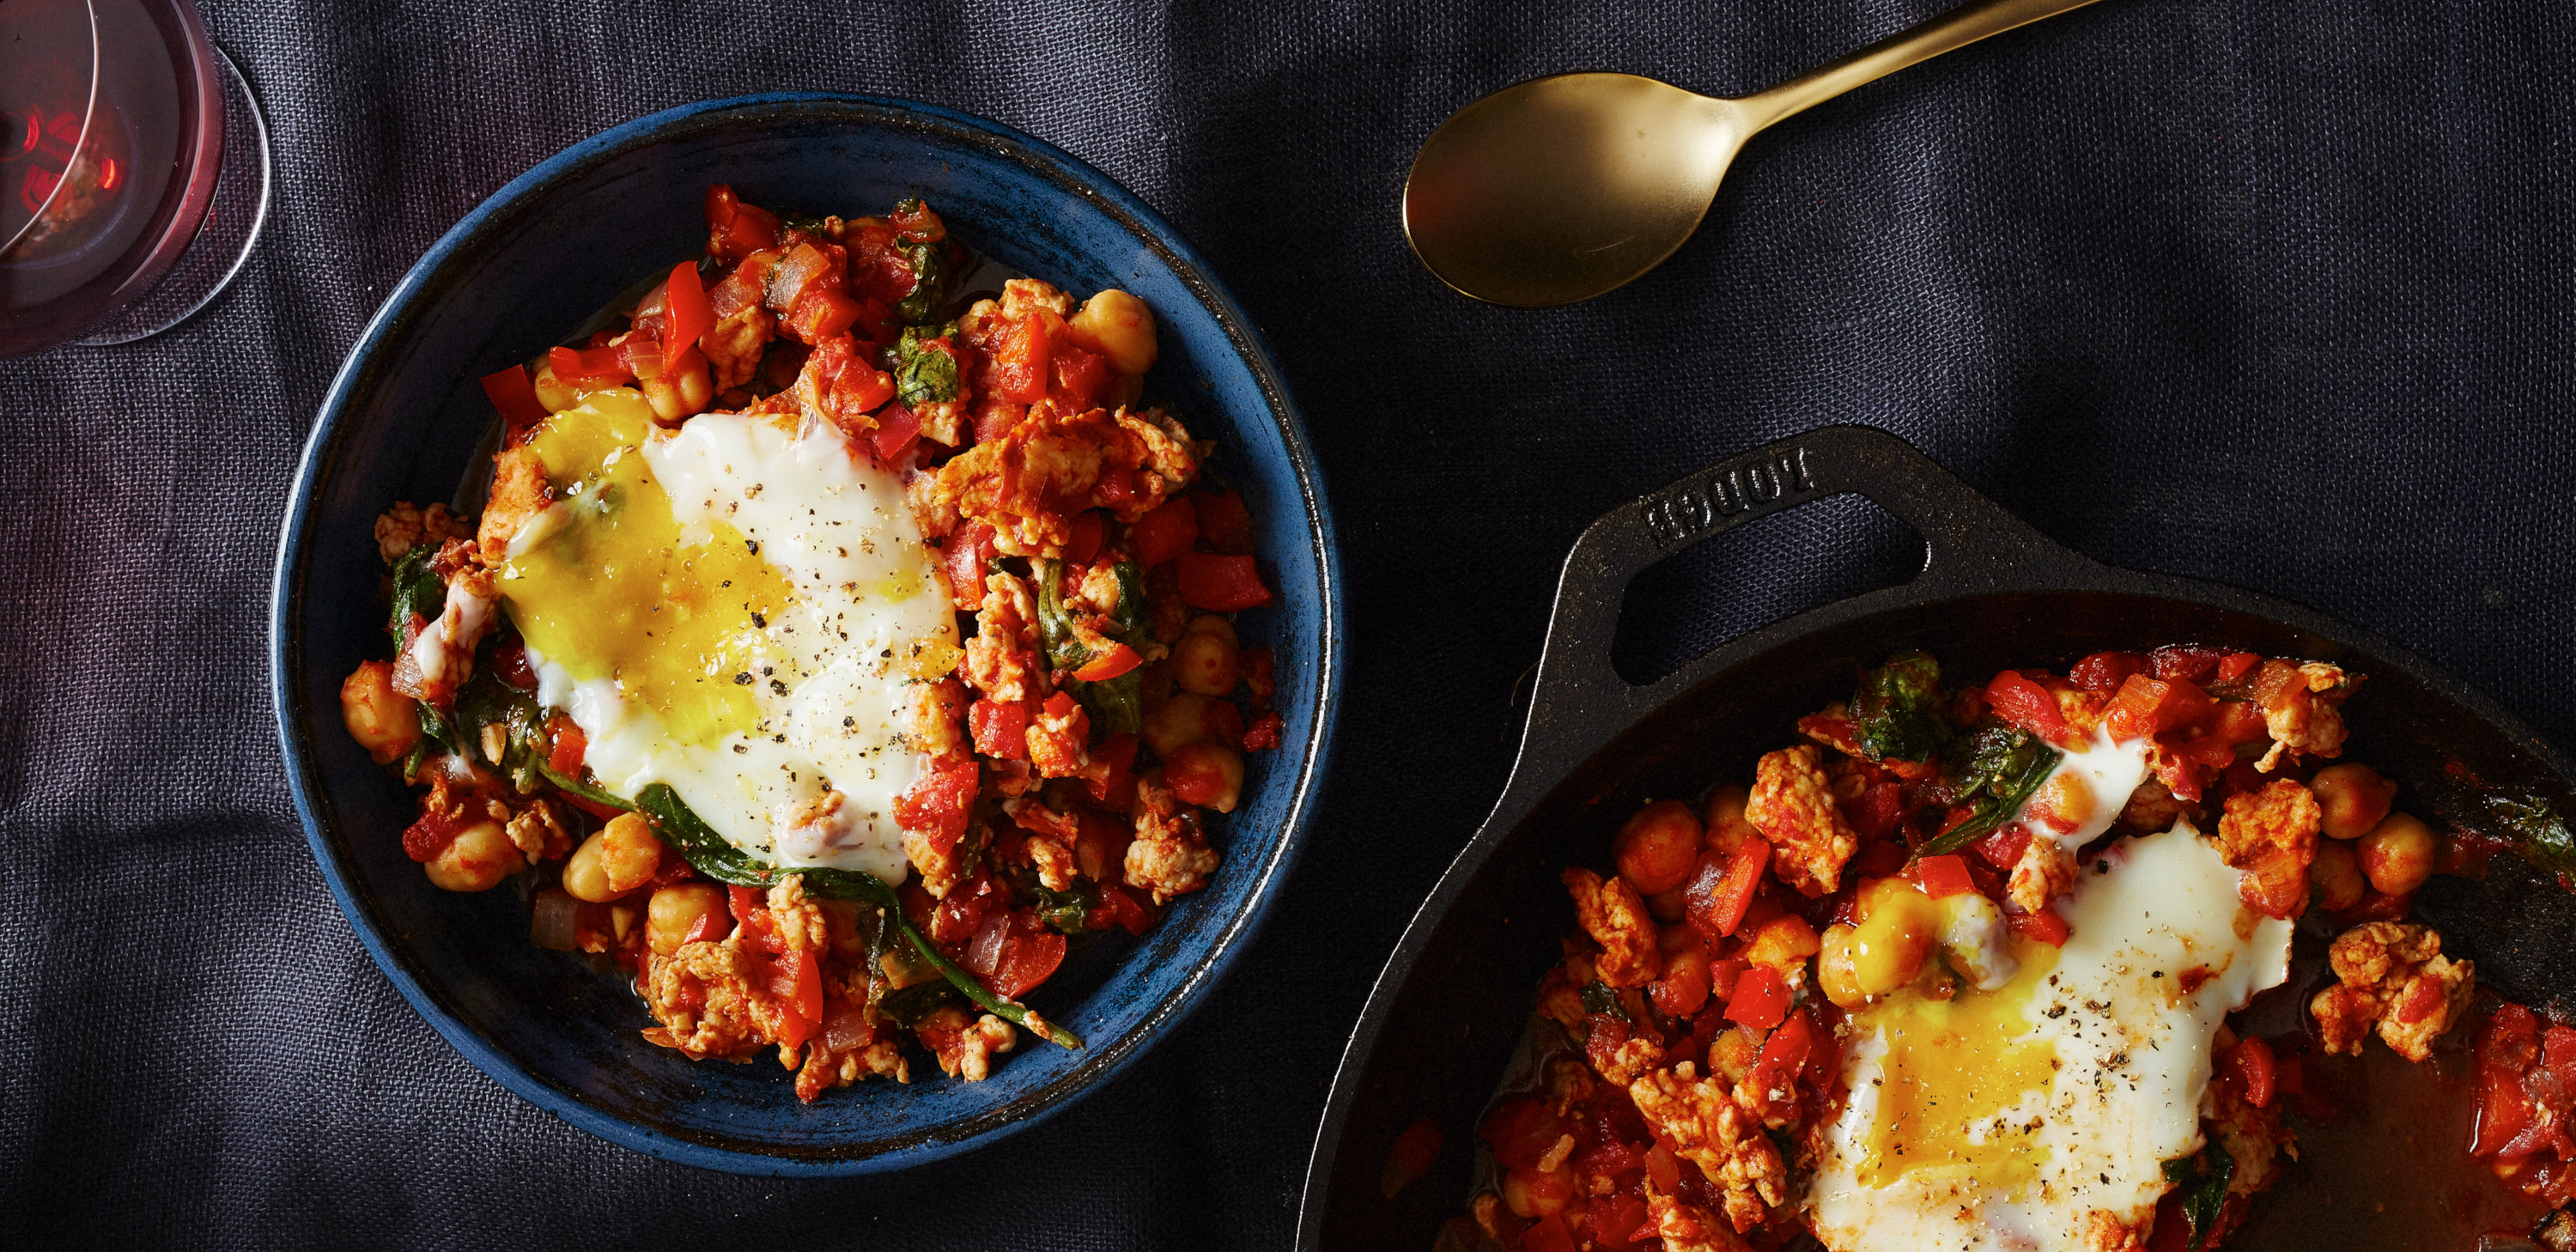 Shakshuka with Turkey, Kale, and Chickpeas. (Photo: Plated)